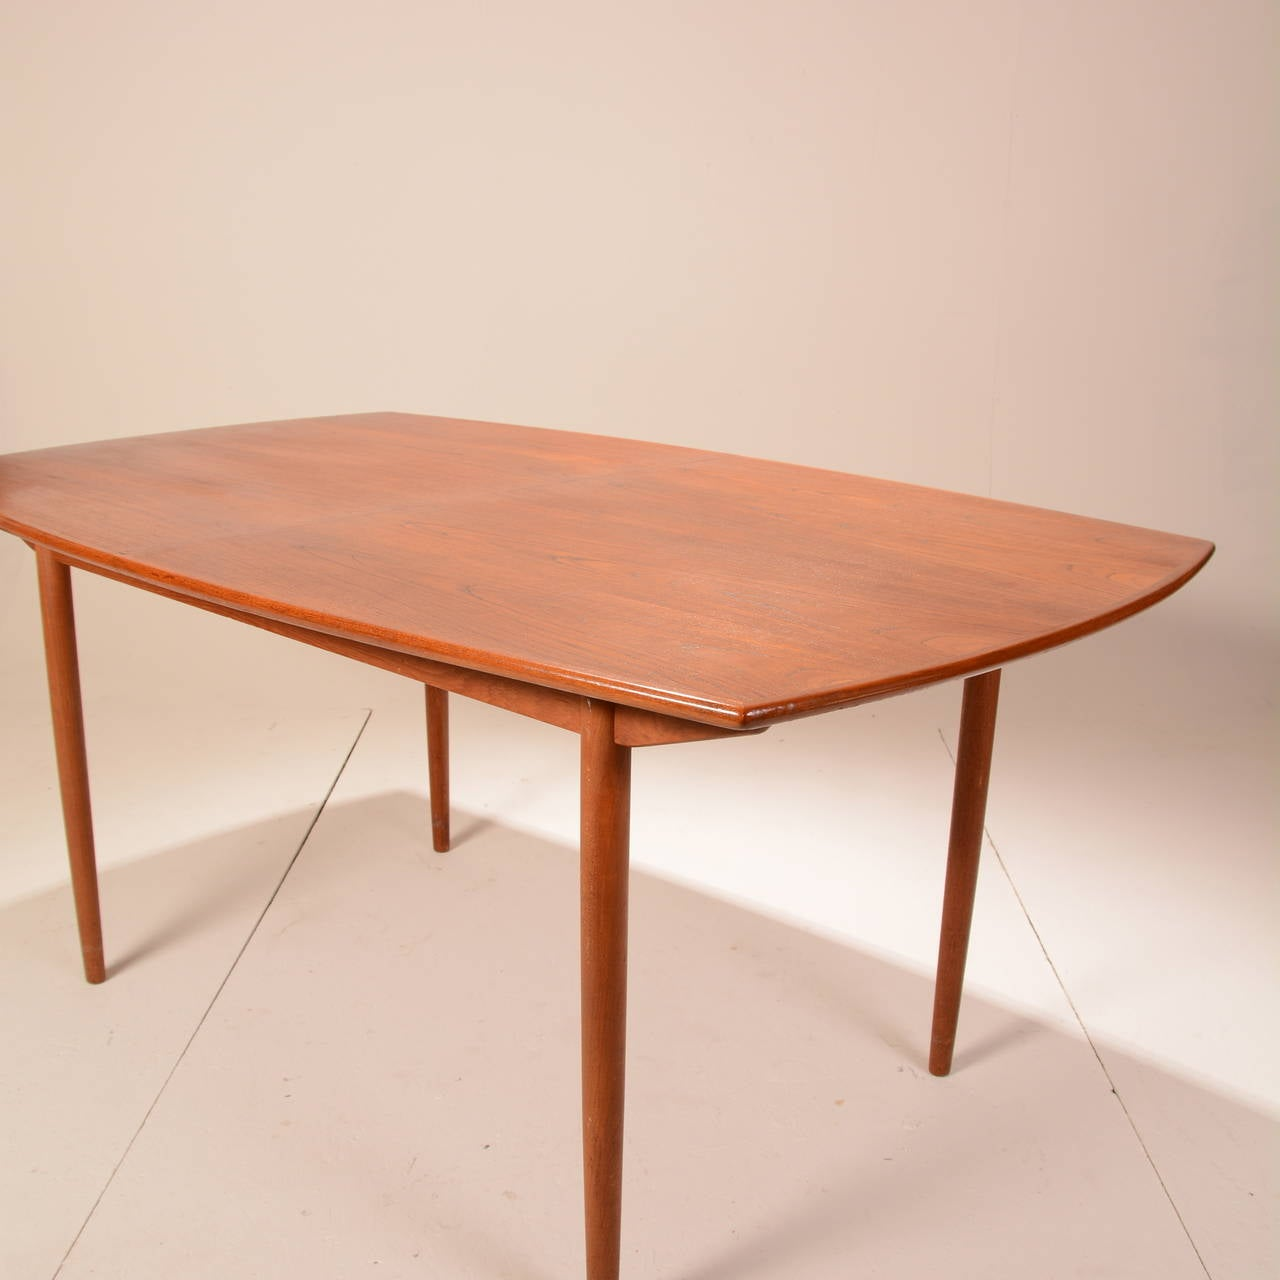 Mid century modern teak extending dining table at 1stdibs for Mid century modern dining table